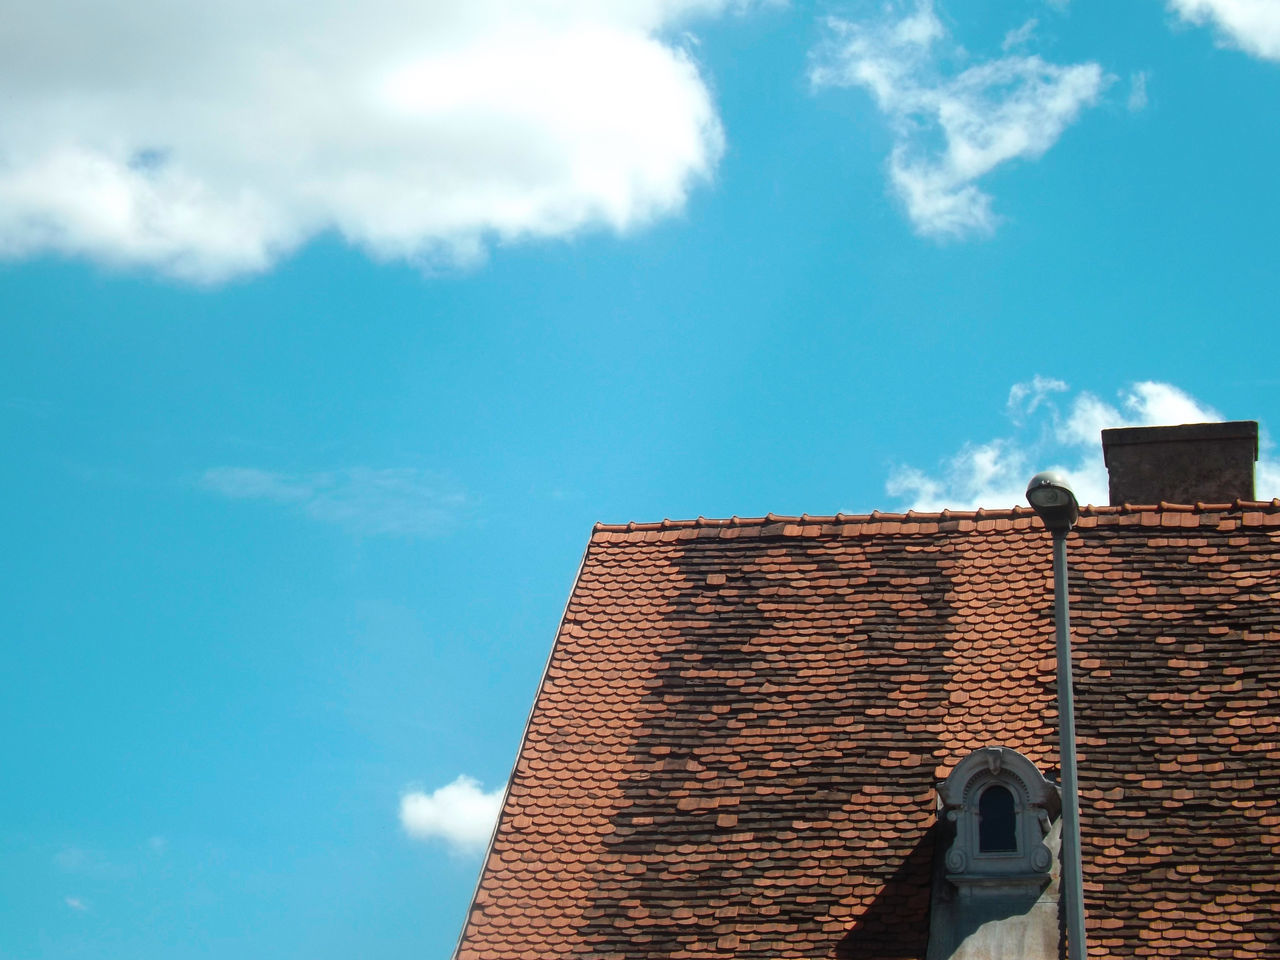 Architecture Building Exterior Built Structure Cloud - Sky Day Low Angle View Nature No People Outdoors Sky Tiled Roof